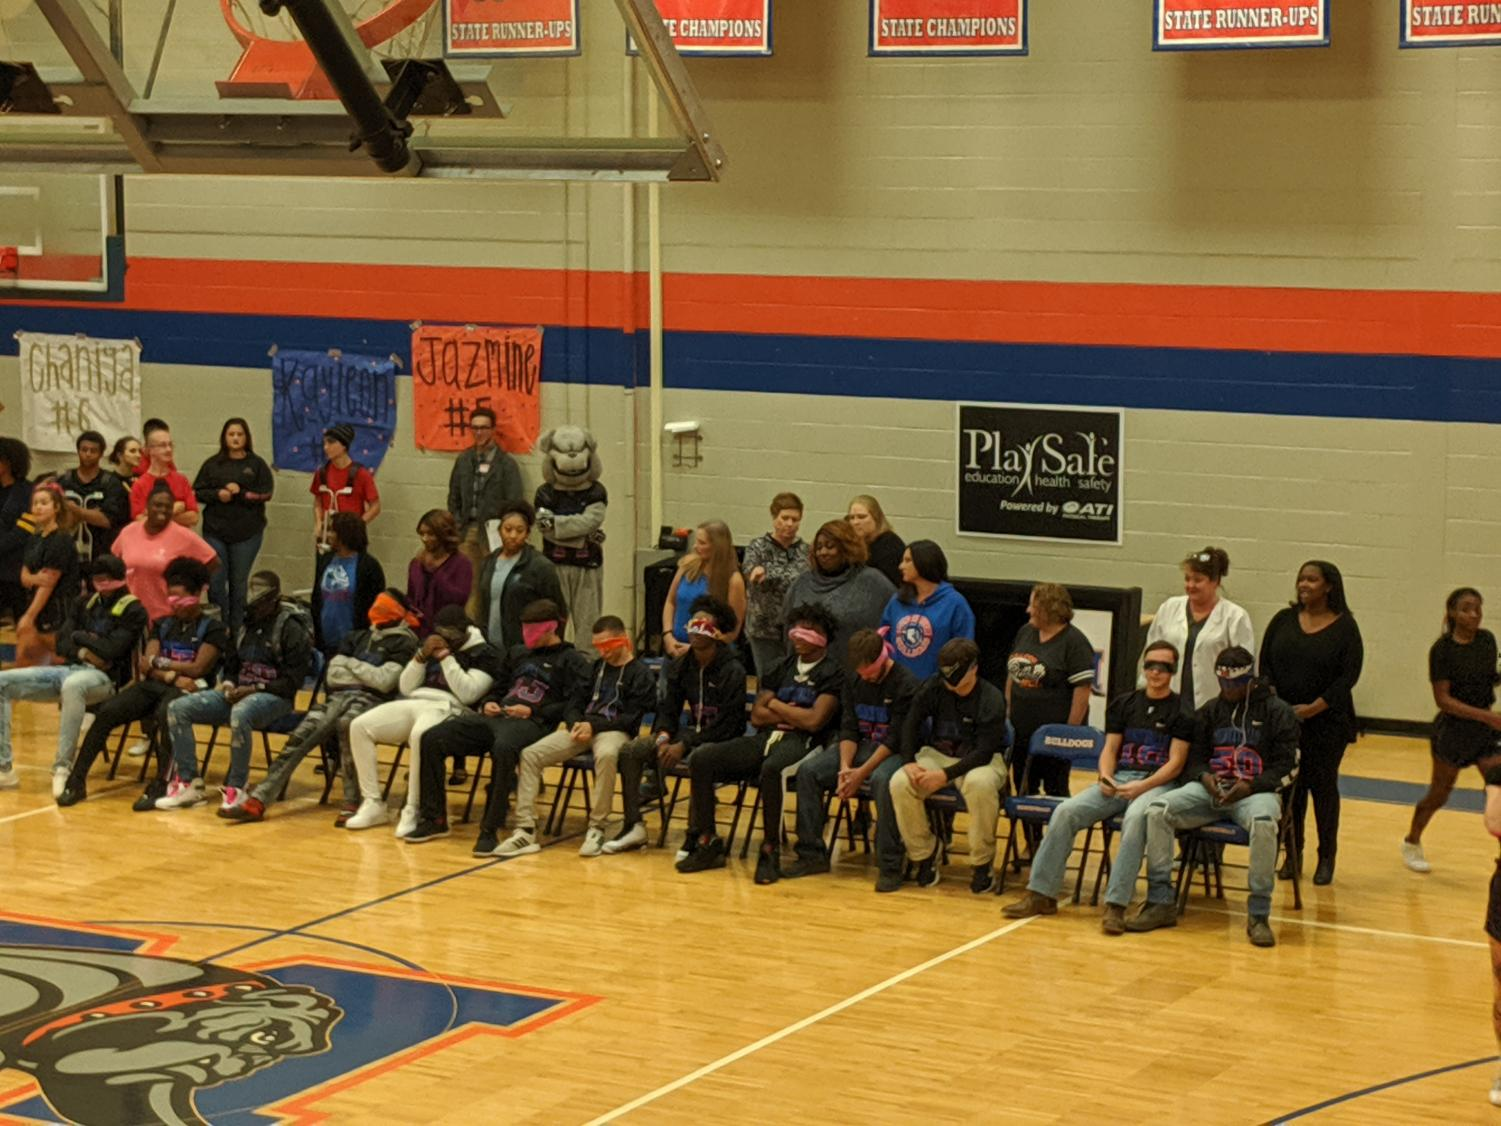 Senior football players were surprised by their moms at the pep rally.